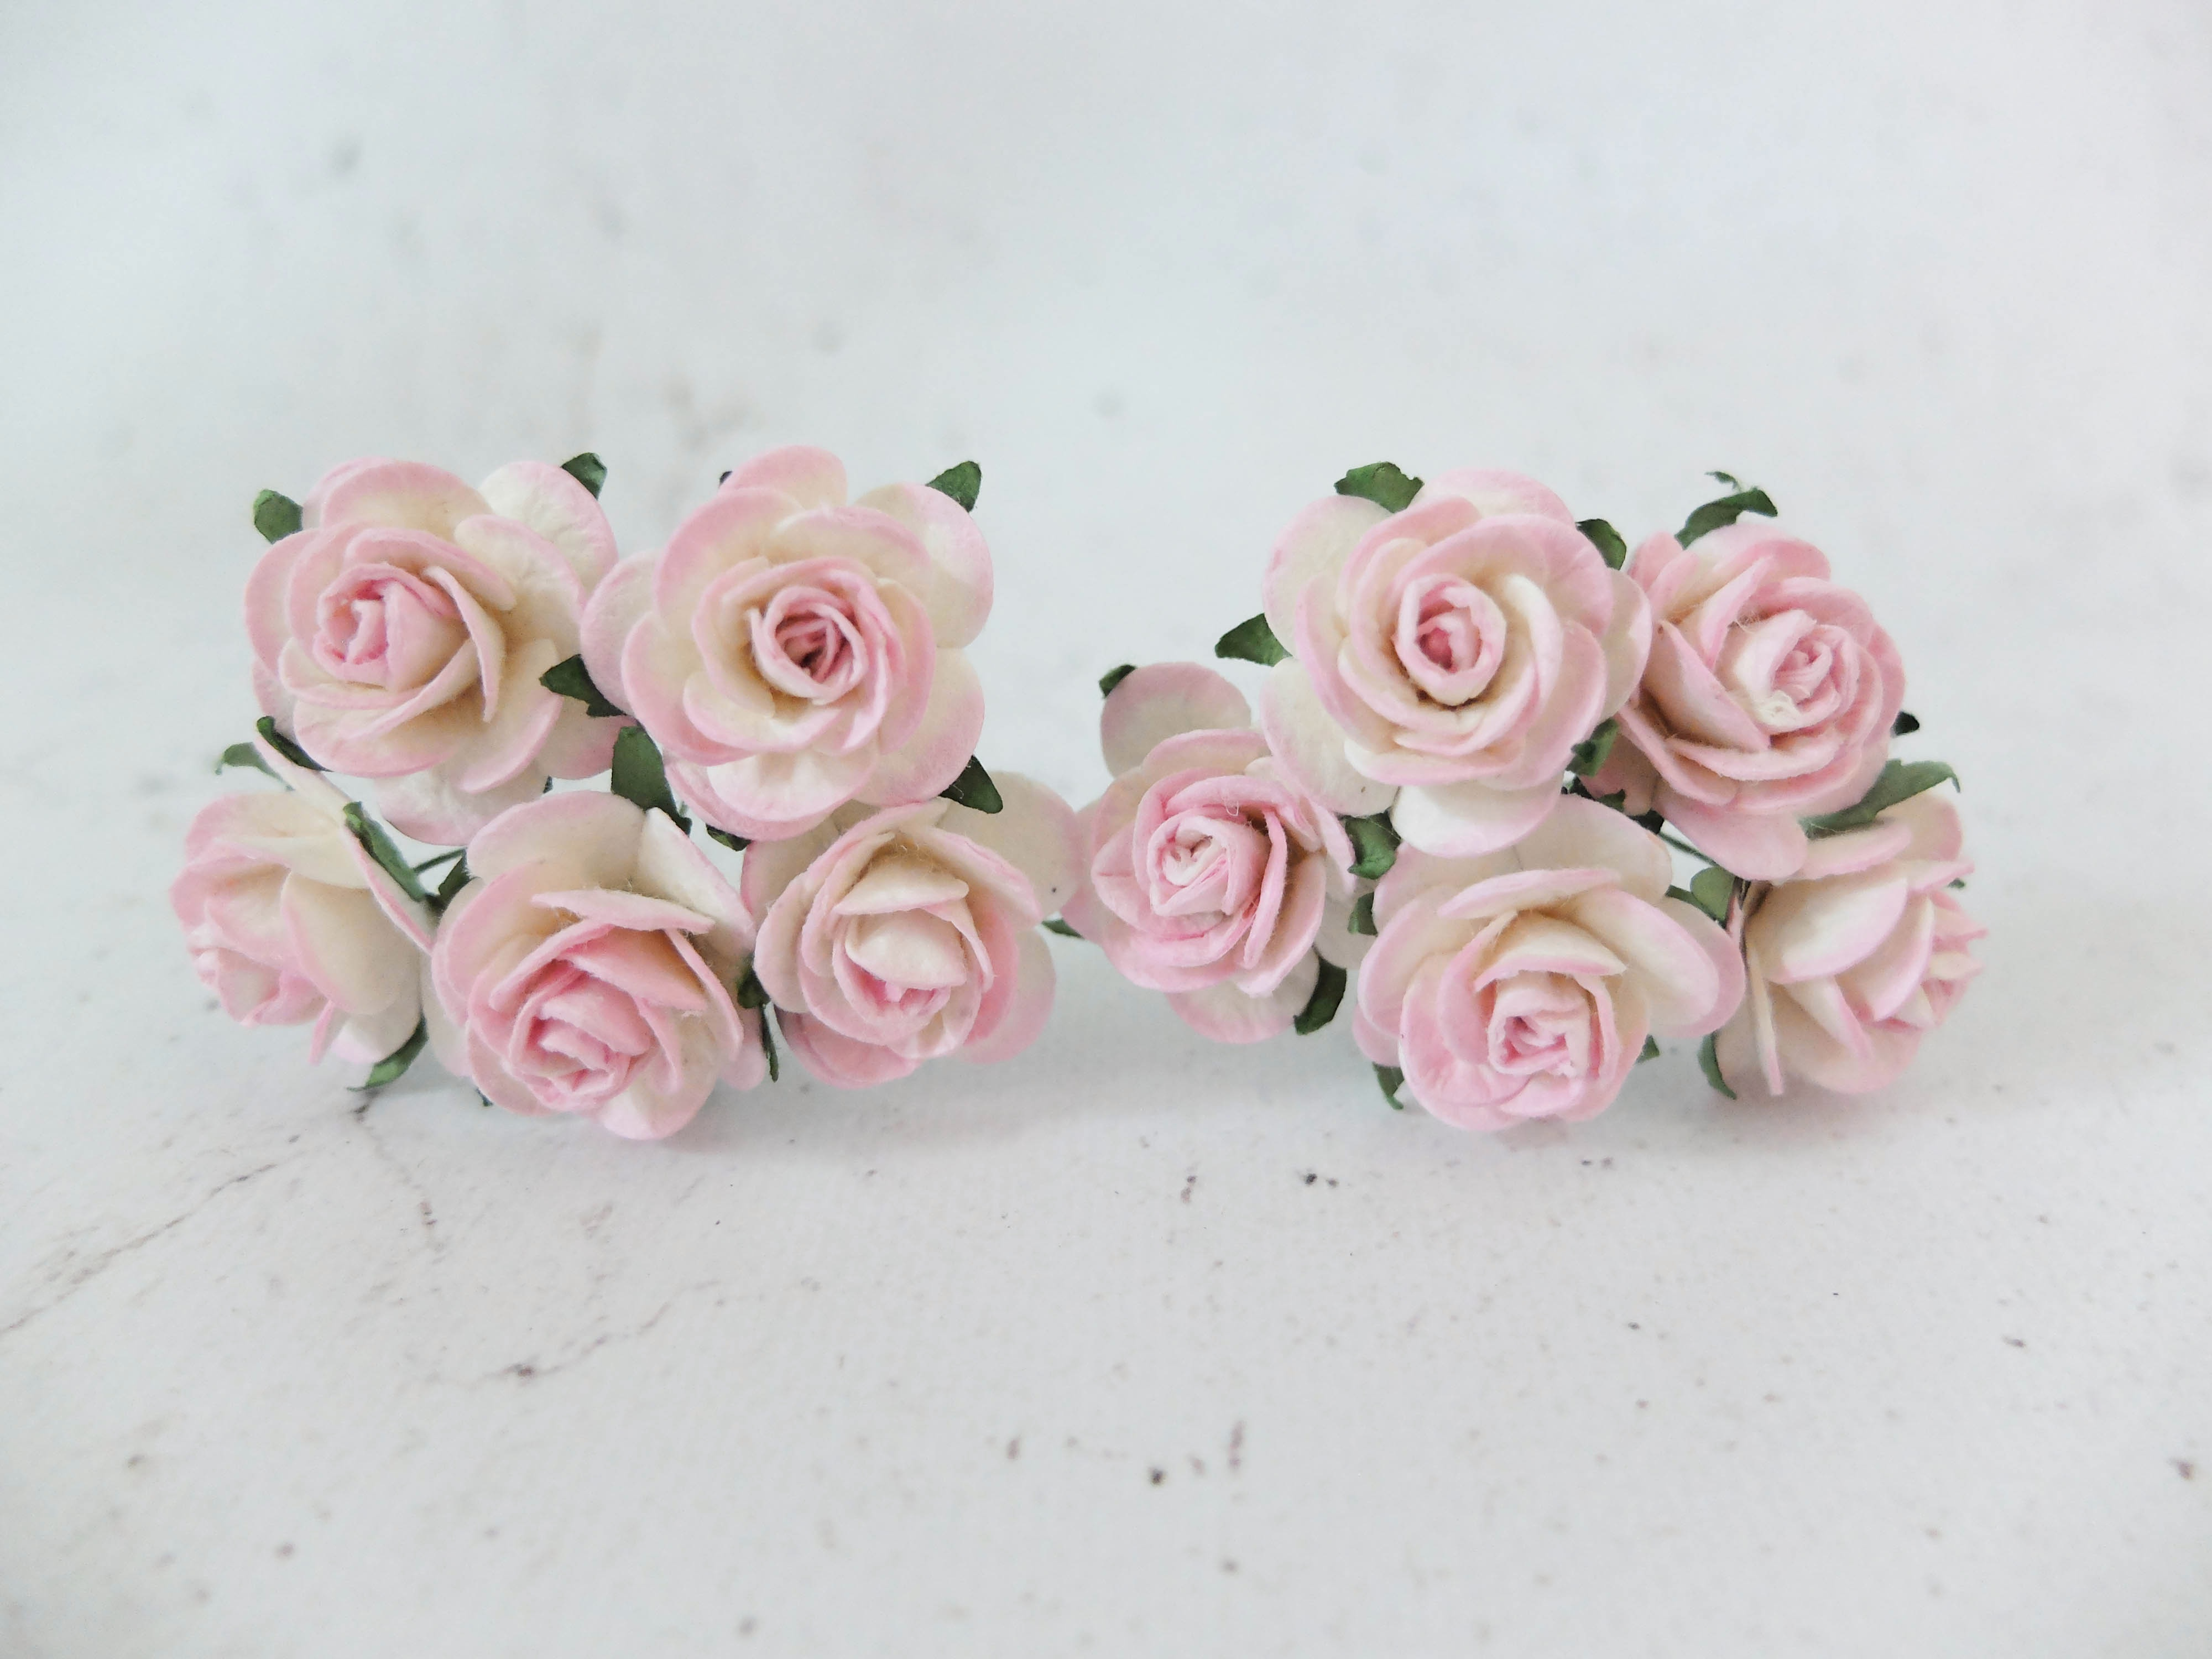 1 Inch Mulberry Paper Roses Wholesale 50 Pcspack 25mm Paper Roses